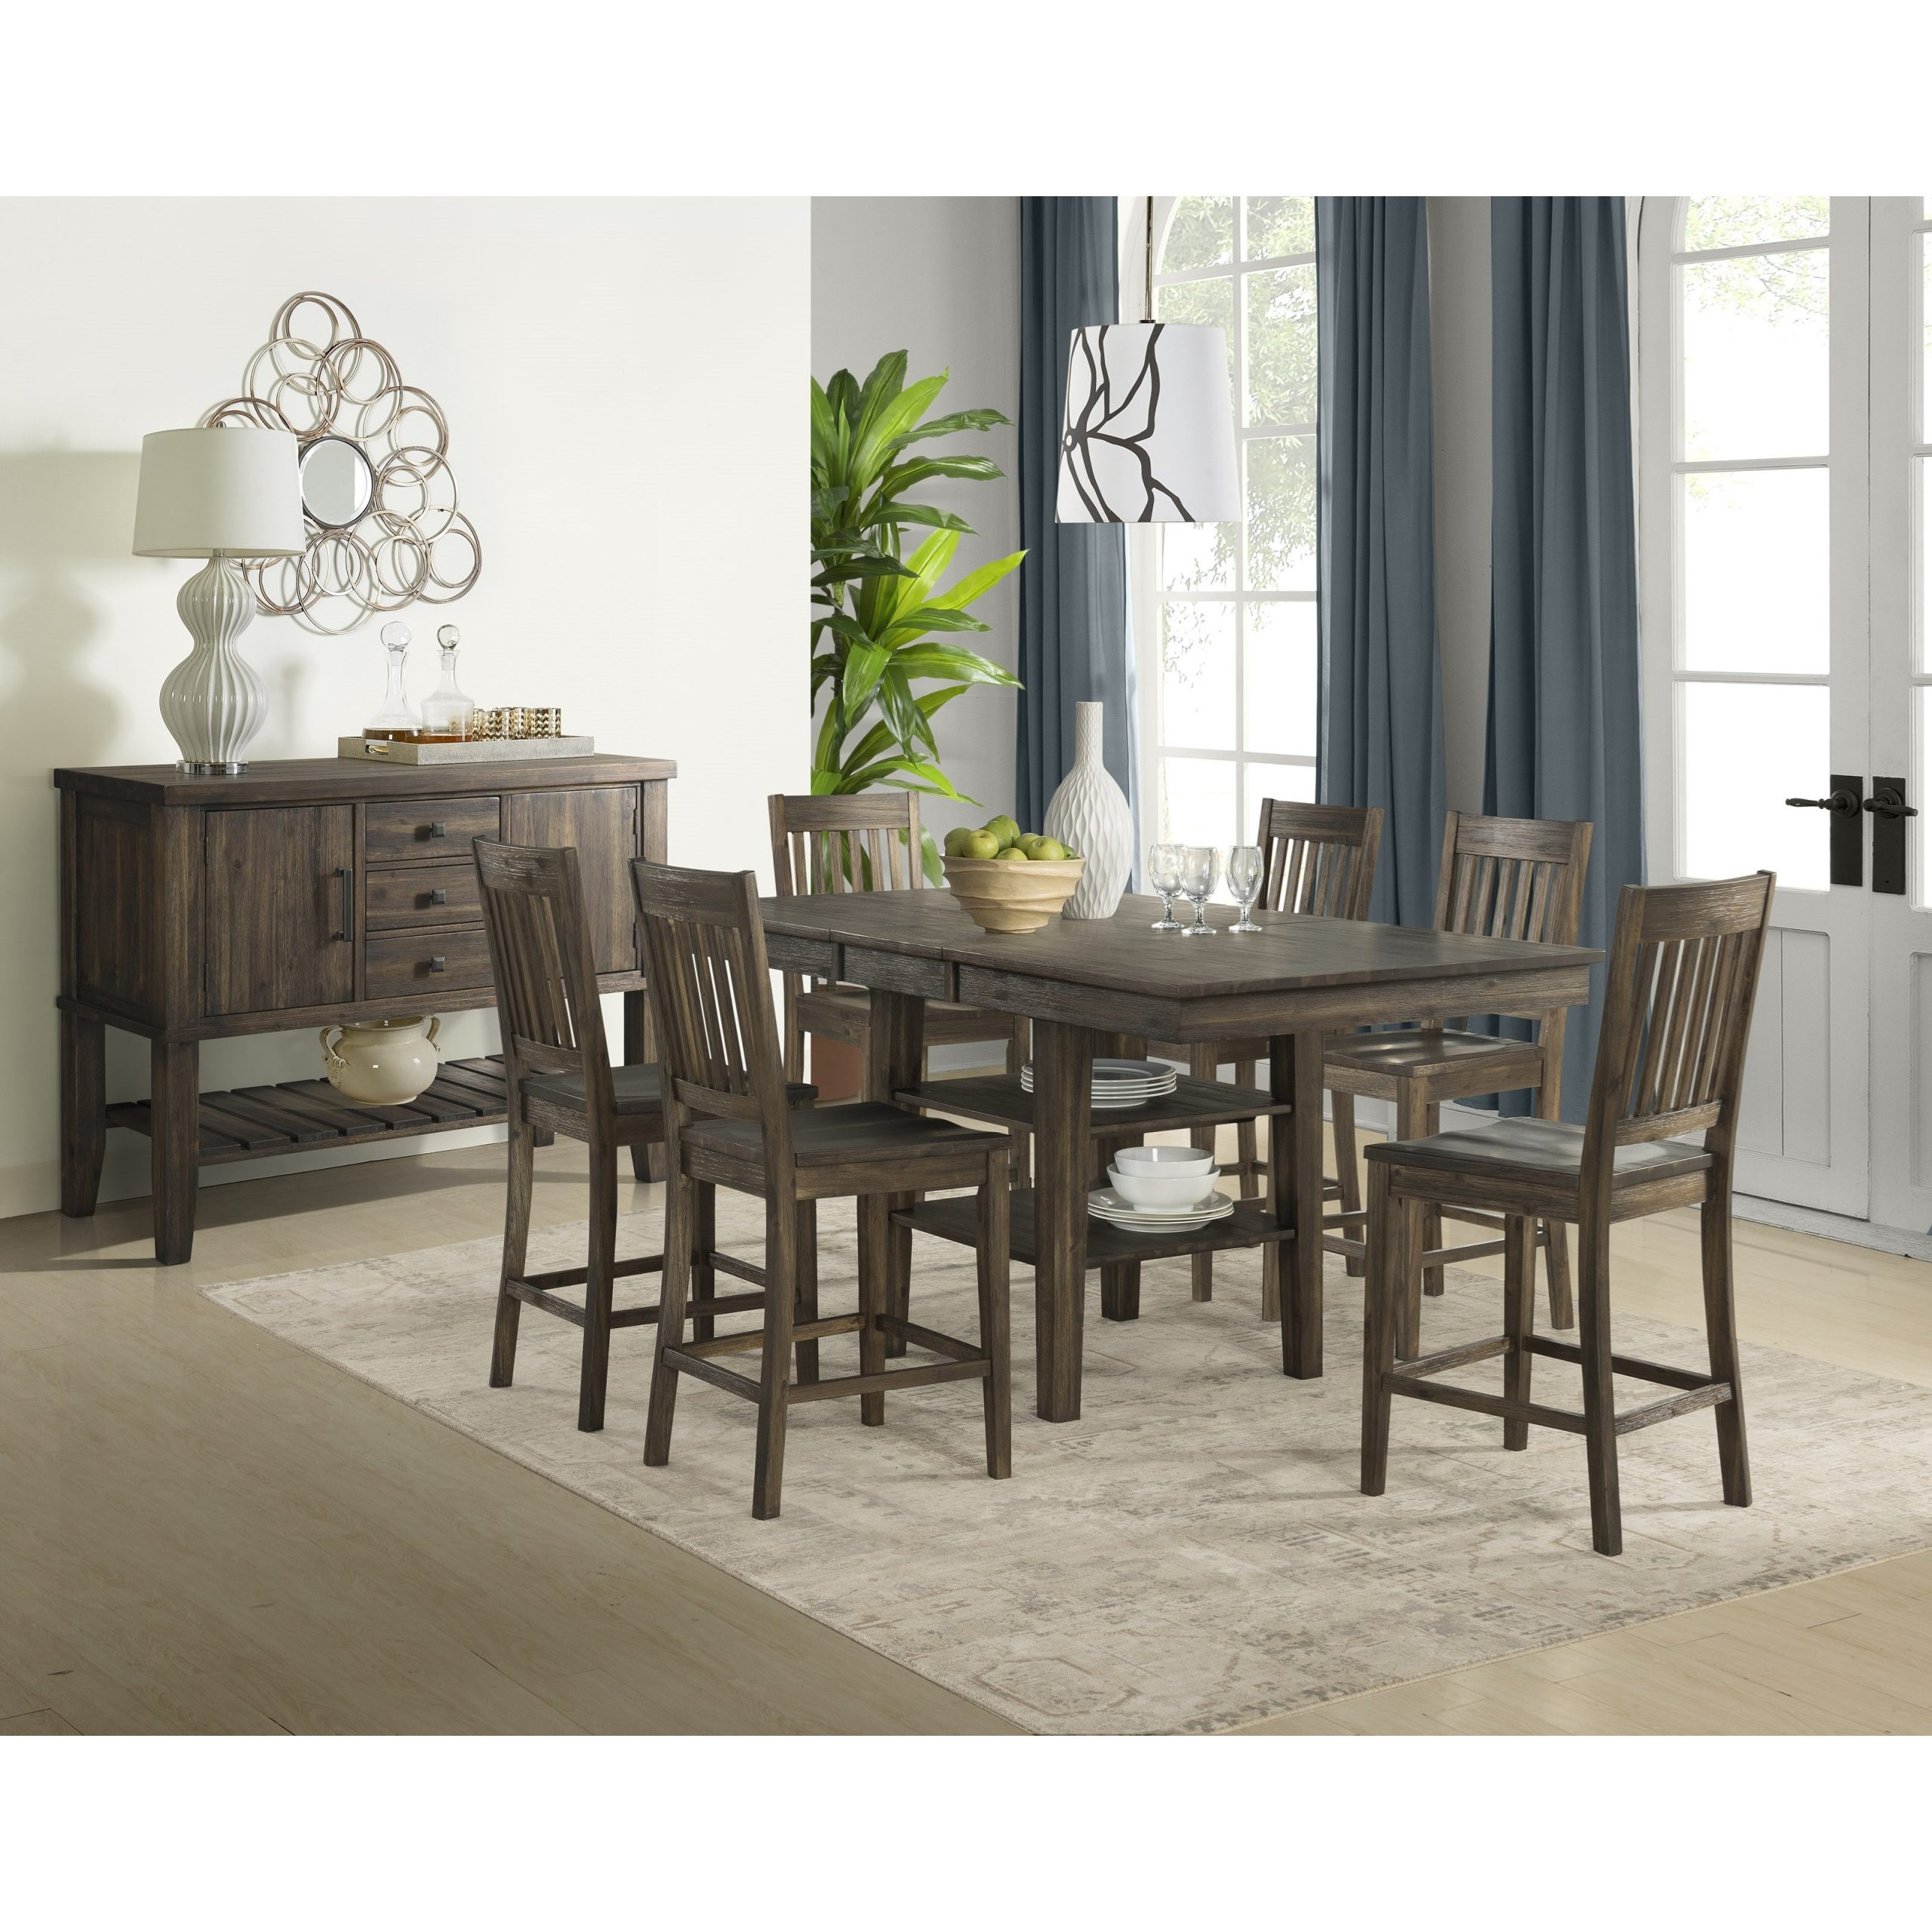 Aamerica Huron Transitional Solid Wood Counter Height Pertaining To Most Popular Barra Bar Height Pedestal Dining Tables (View 6 of 15)